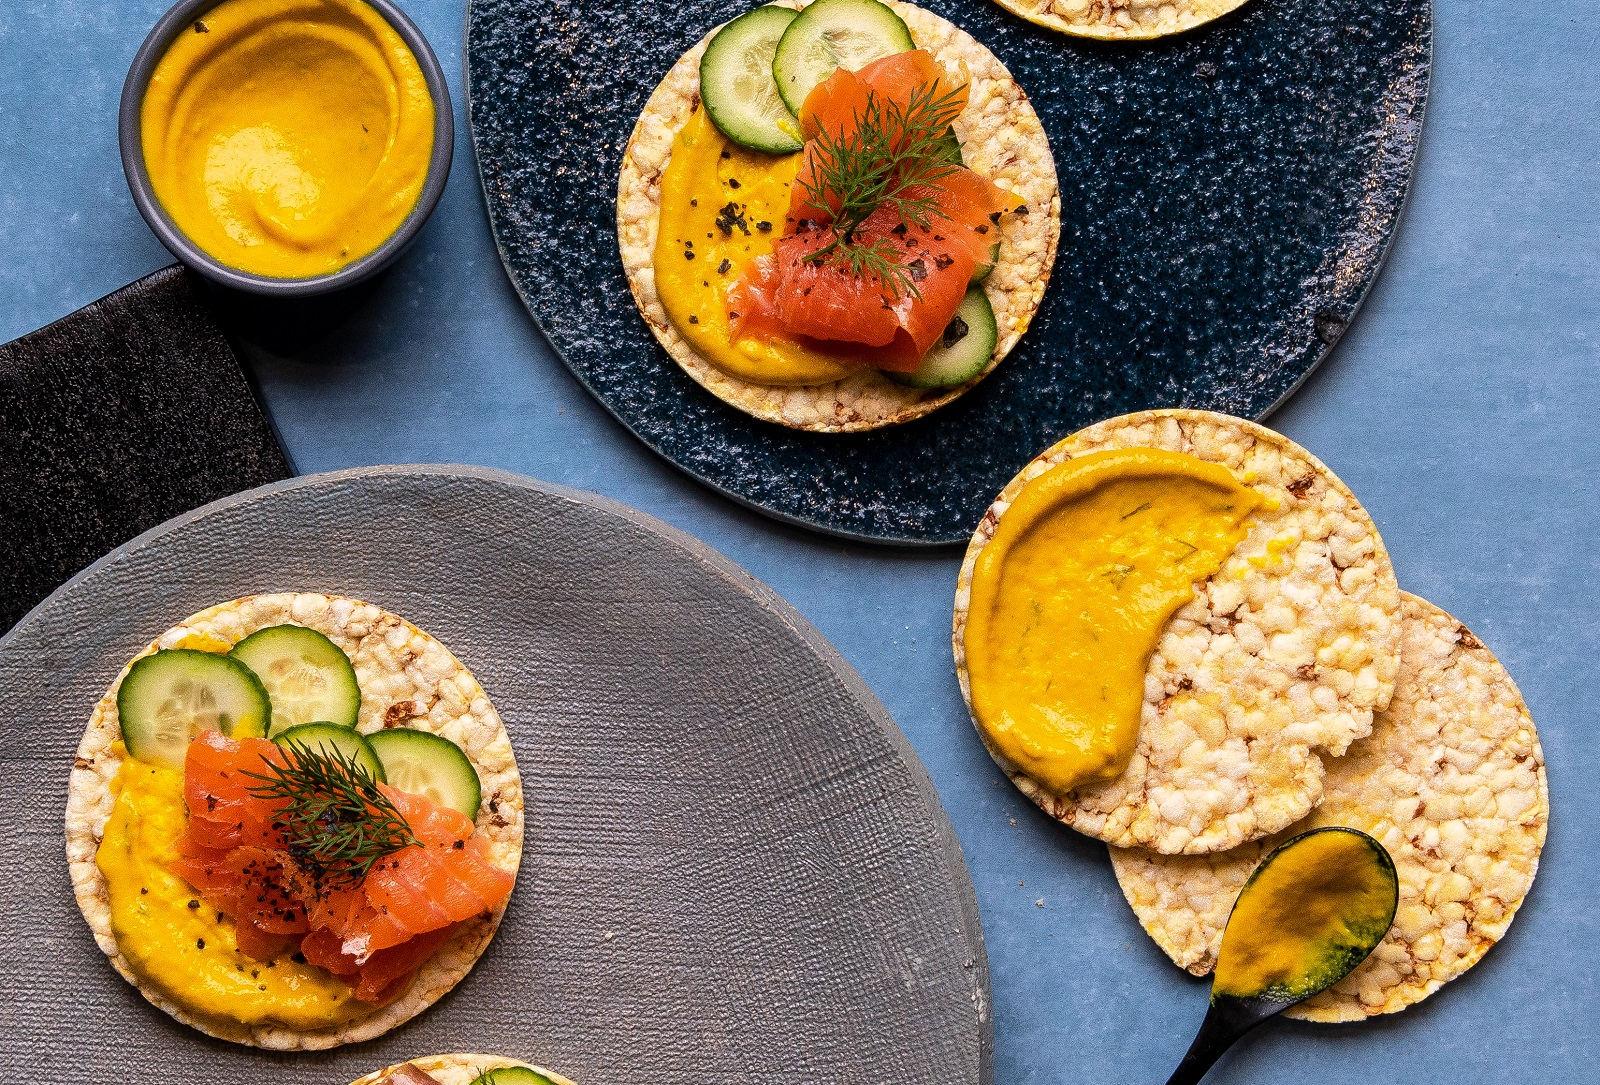 Honey Dill Mustard, Cucumber & Smoked Trout on Corn Thins slices for lunch